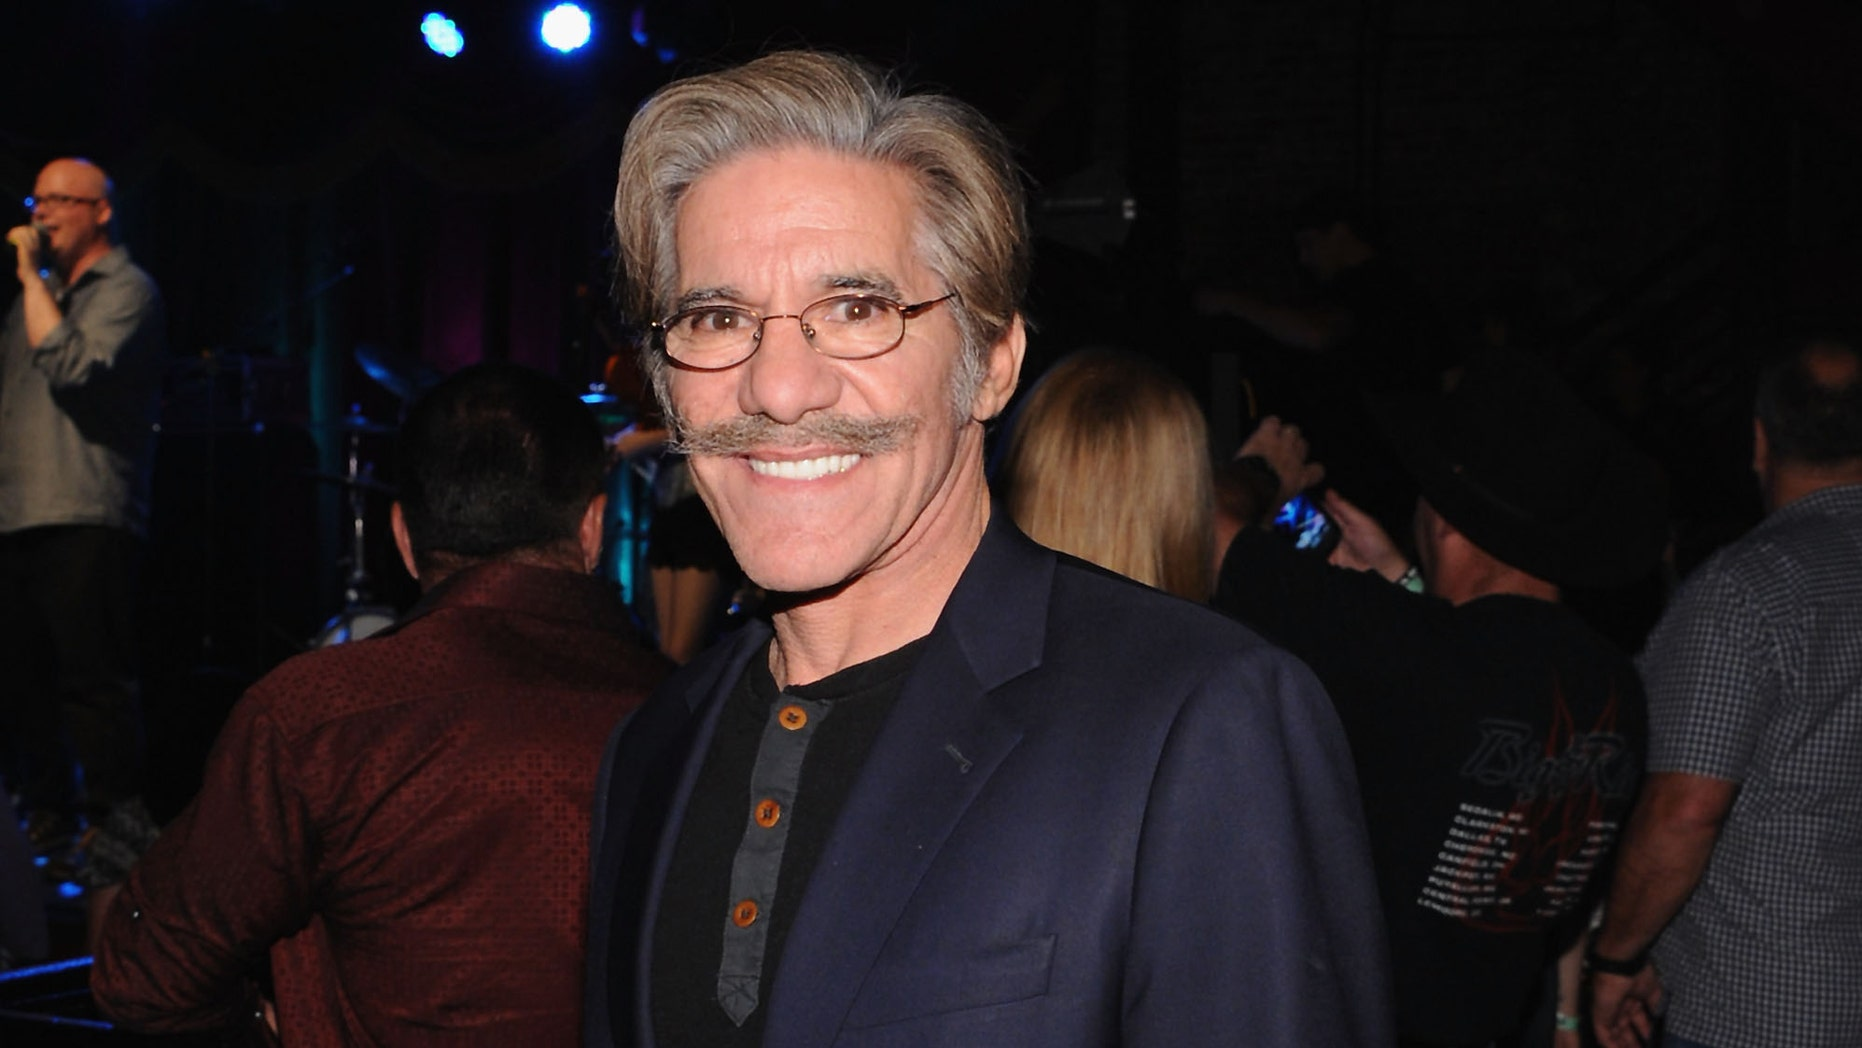 """NEW YORK, NY - SEPTEMBER 23:  News anchor Geraldo Rivera attends the Big & Rich """"Gravity"""" album launch party at Brooklyn Bowl on September 23, 2014 in New York City.  (Photo by Andrew Toth/Getty Images)"""